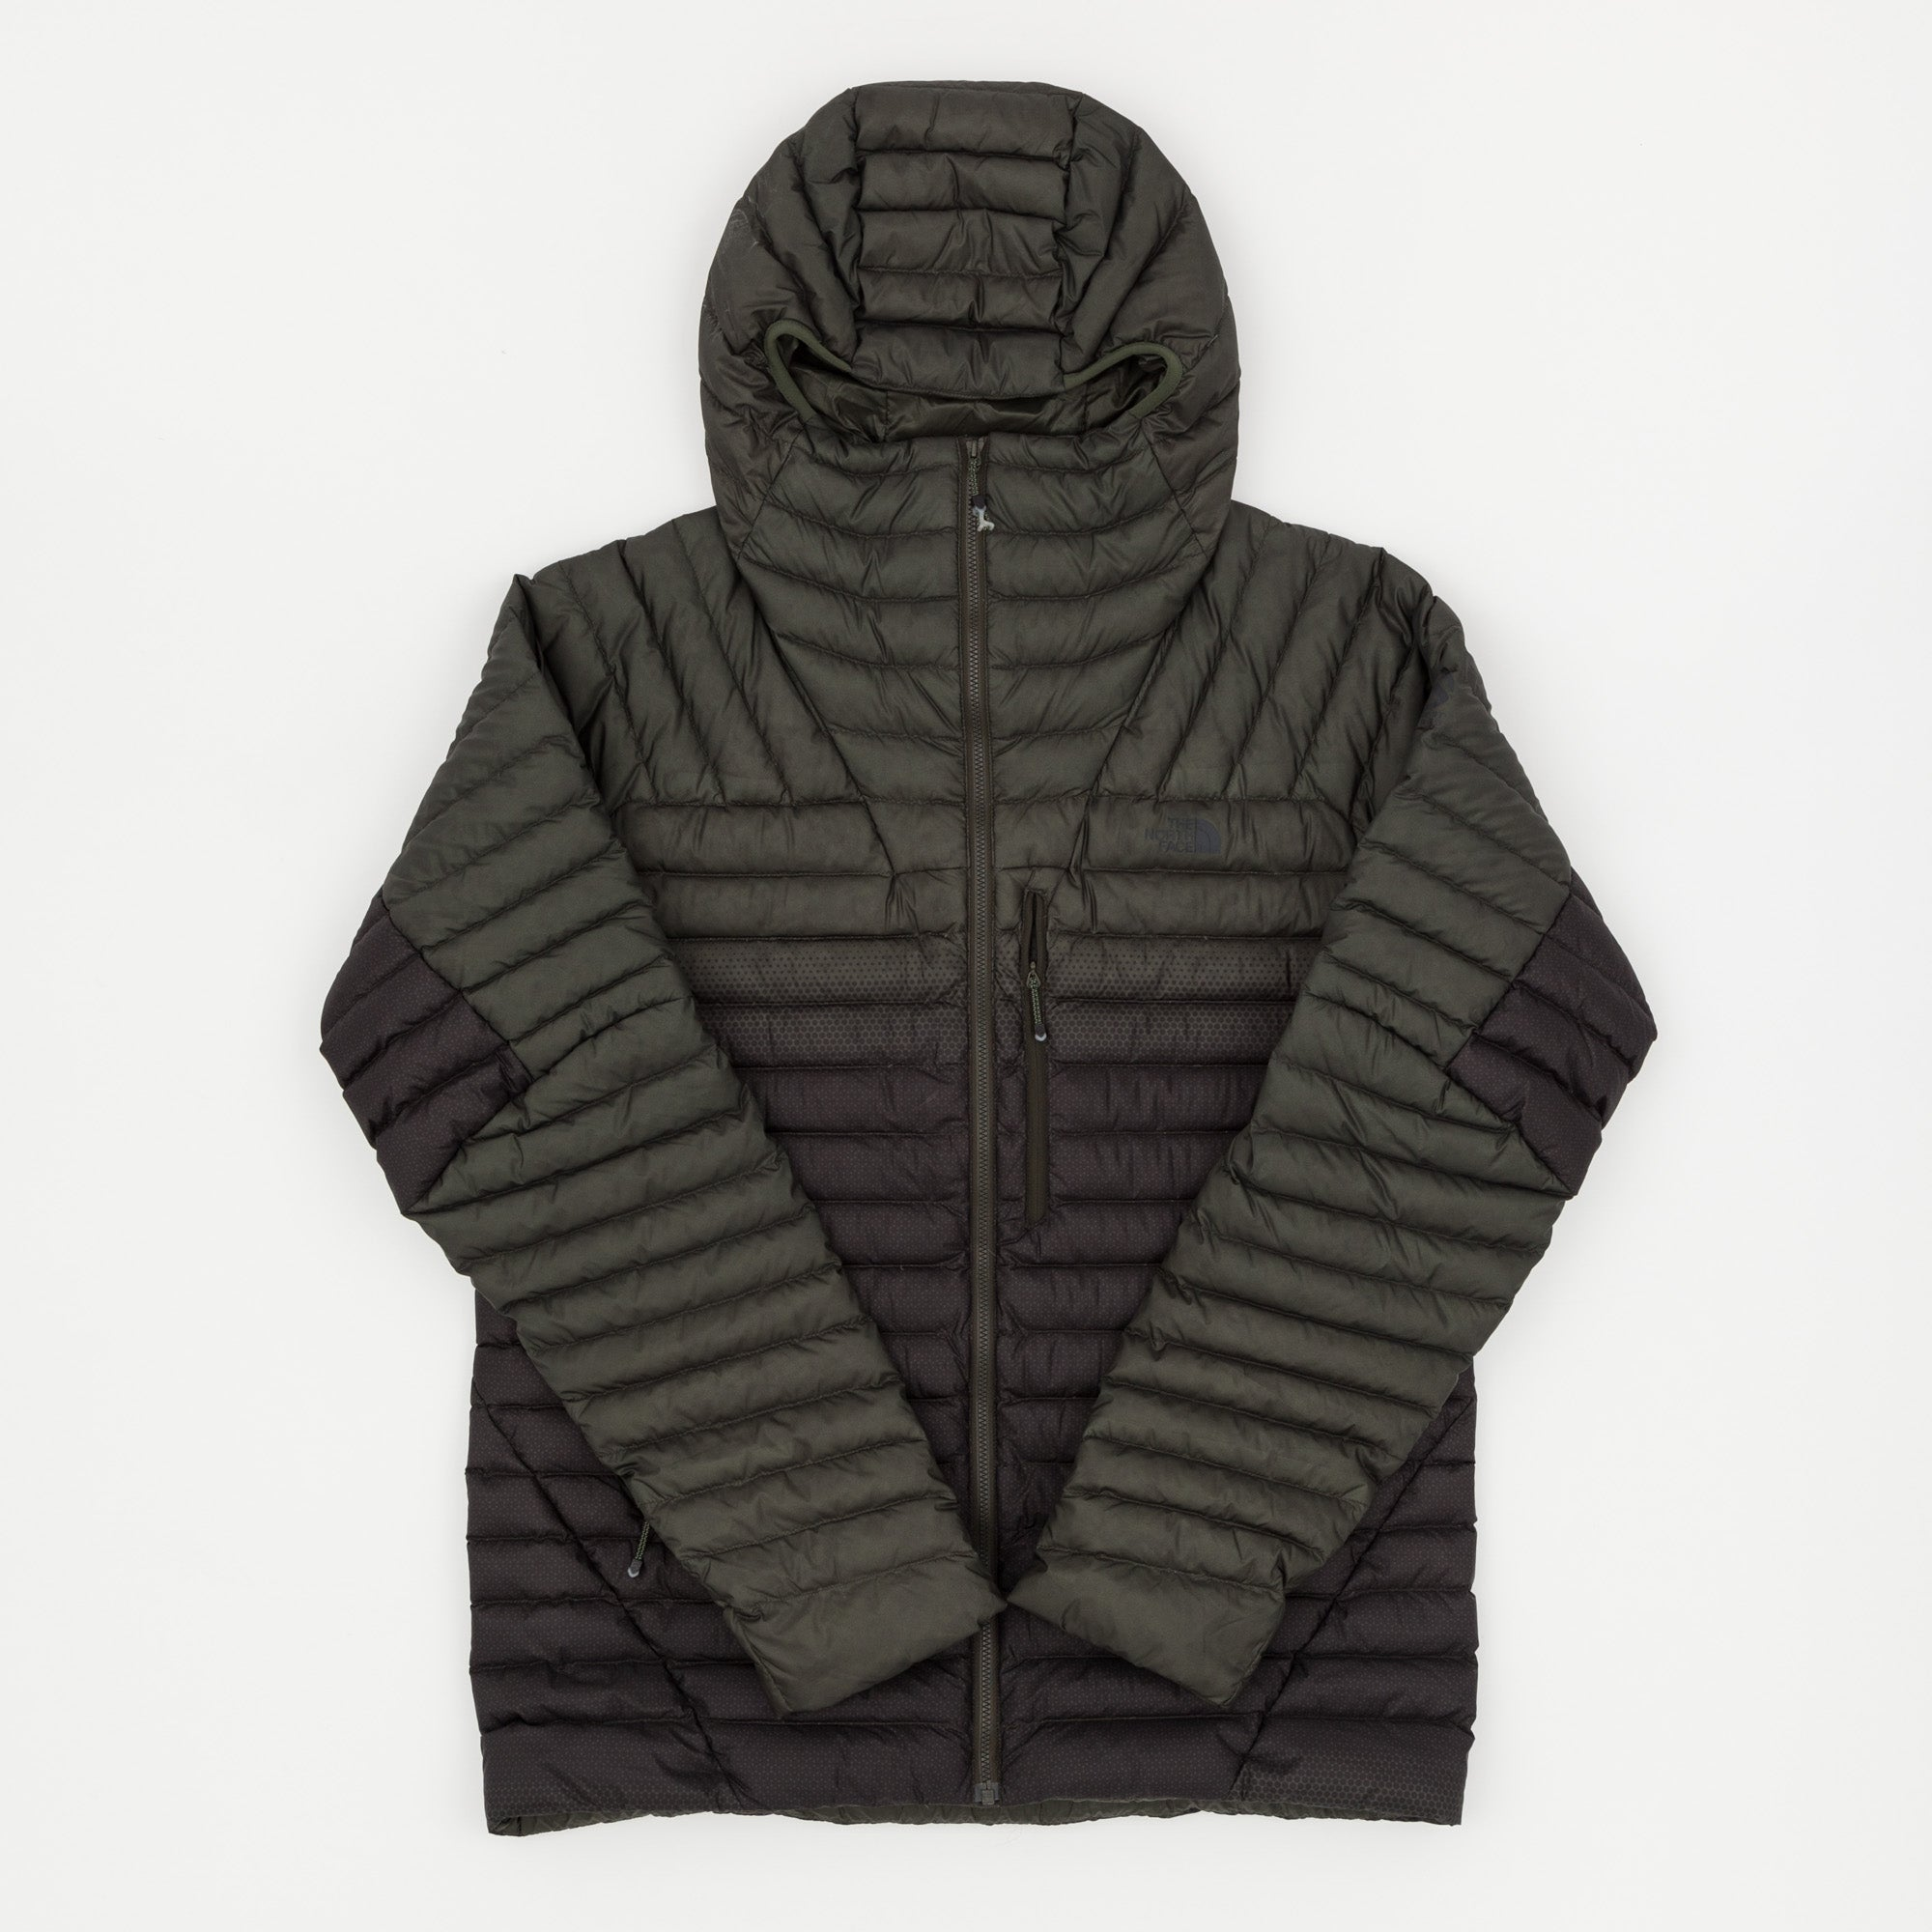 The North Face Summit L3 Jacket